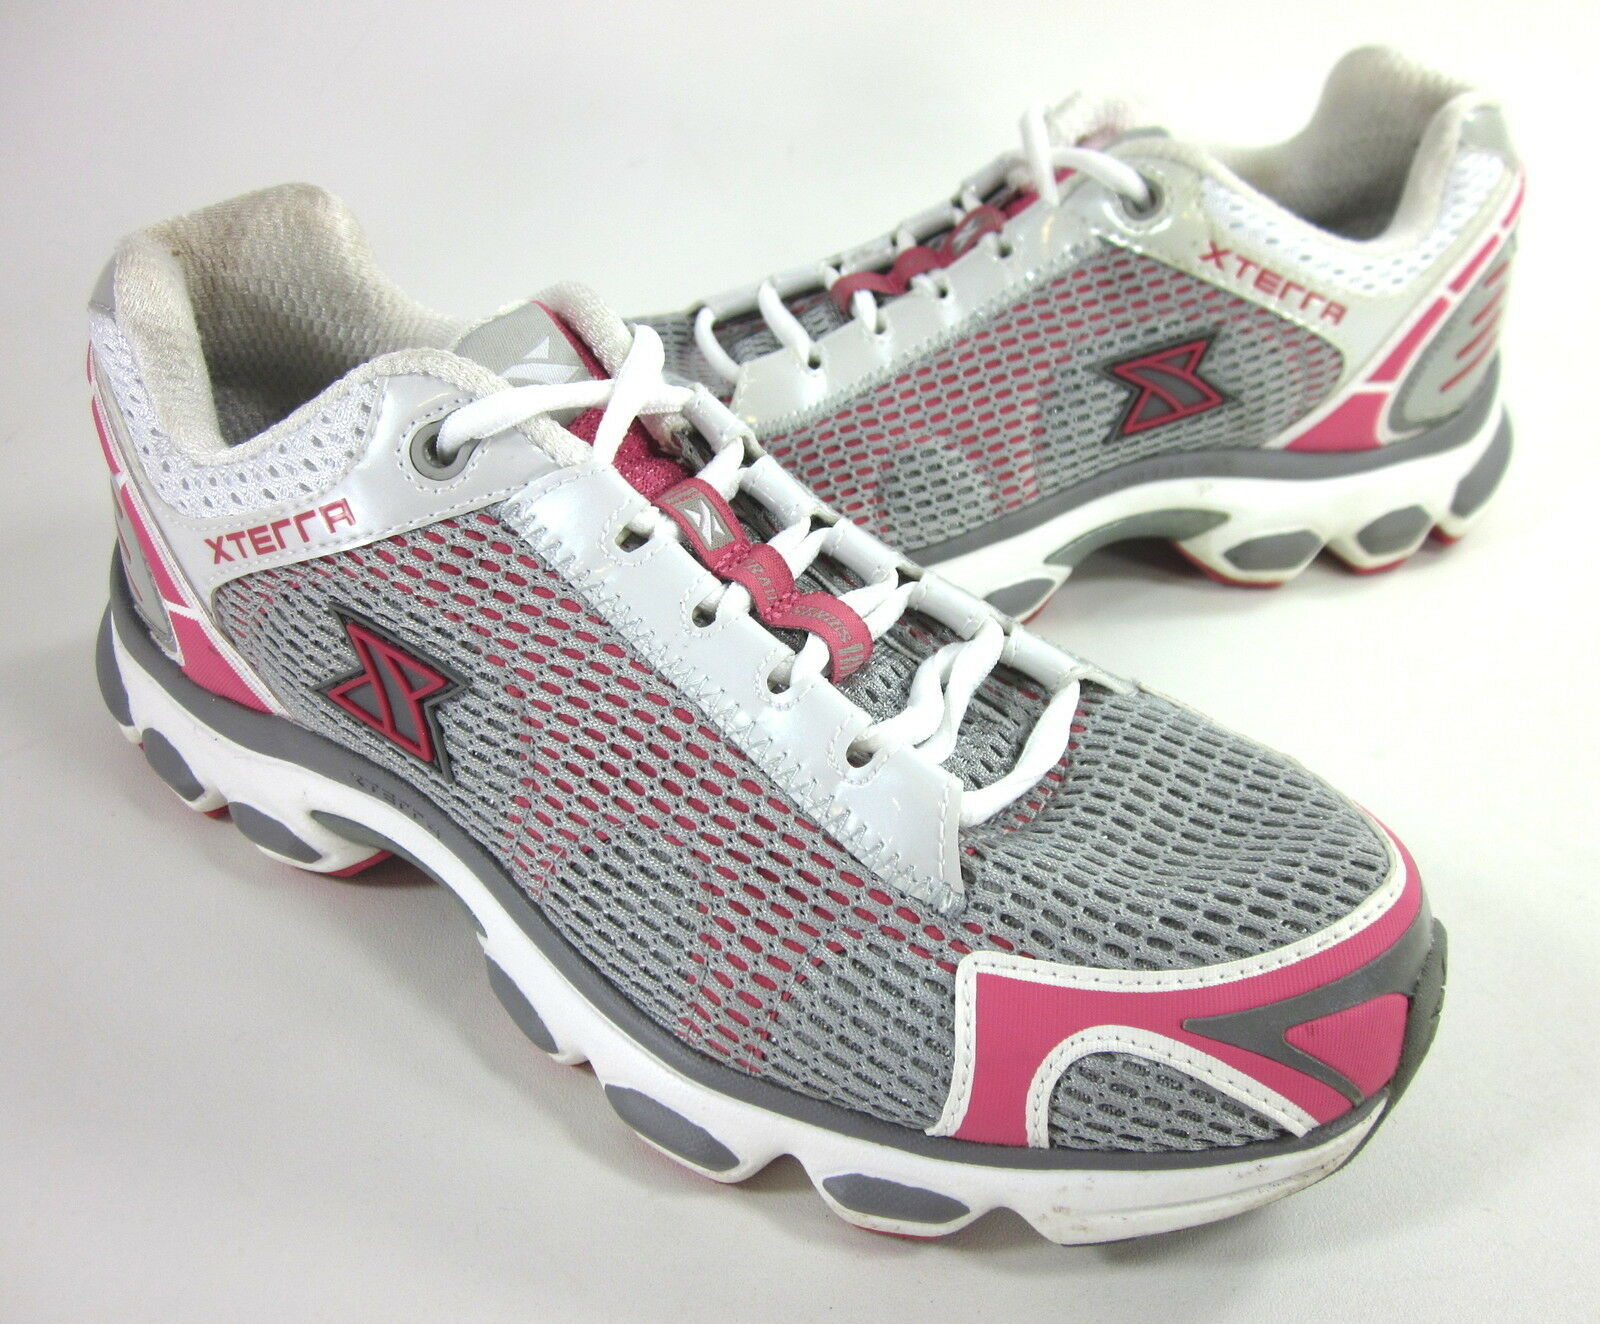 XTERRA TRAIL Damenschuhe FW21002 XR 1.0 TRAIL XTERRA RUNNING SHOE THUNDERCLOUD/HOT PNK US SZ 9.5 M 5414b3